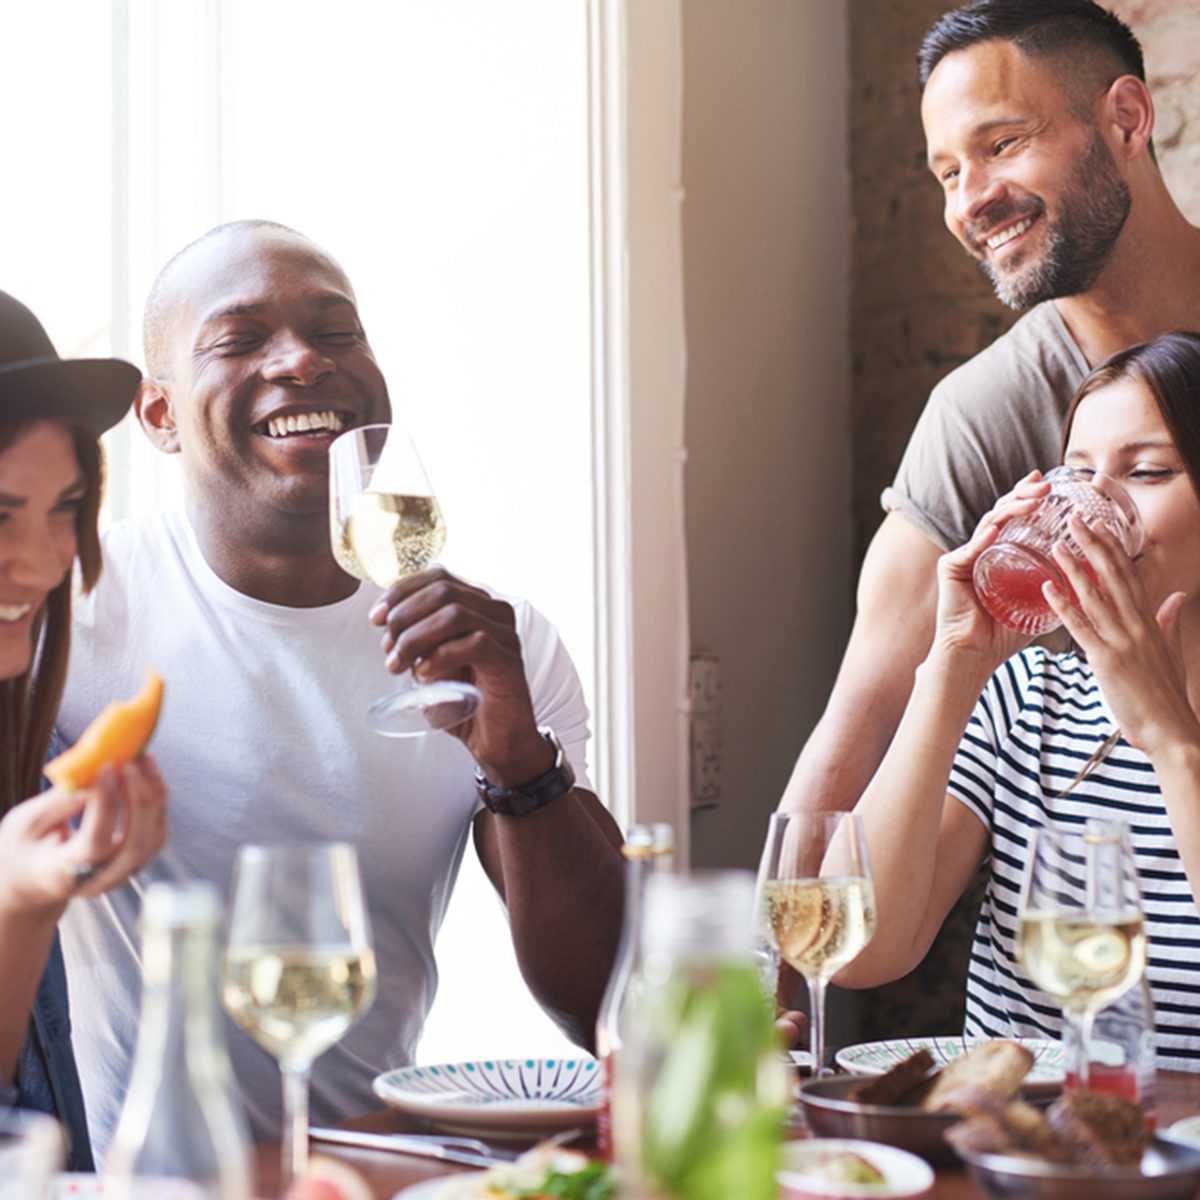 Gathering of four diverse laughing adults enjoying wine and appetizers at lunch with each other at restaurant table beside large bright window; Shutterstock ID 435402382